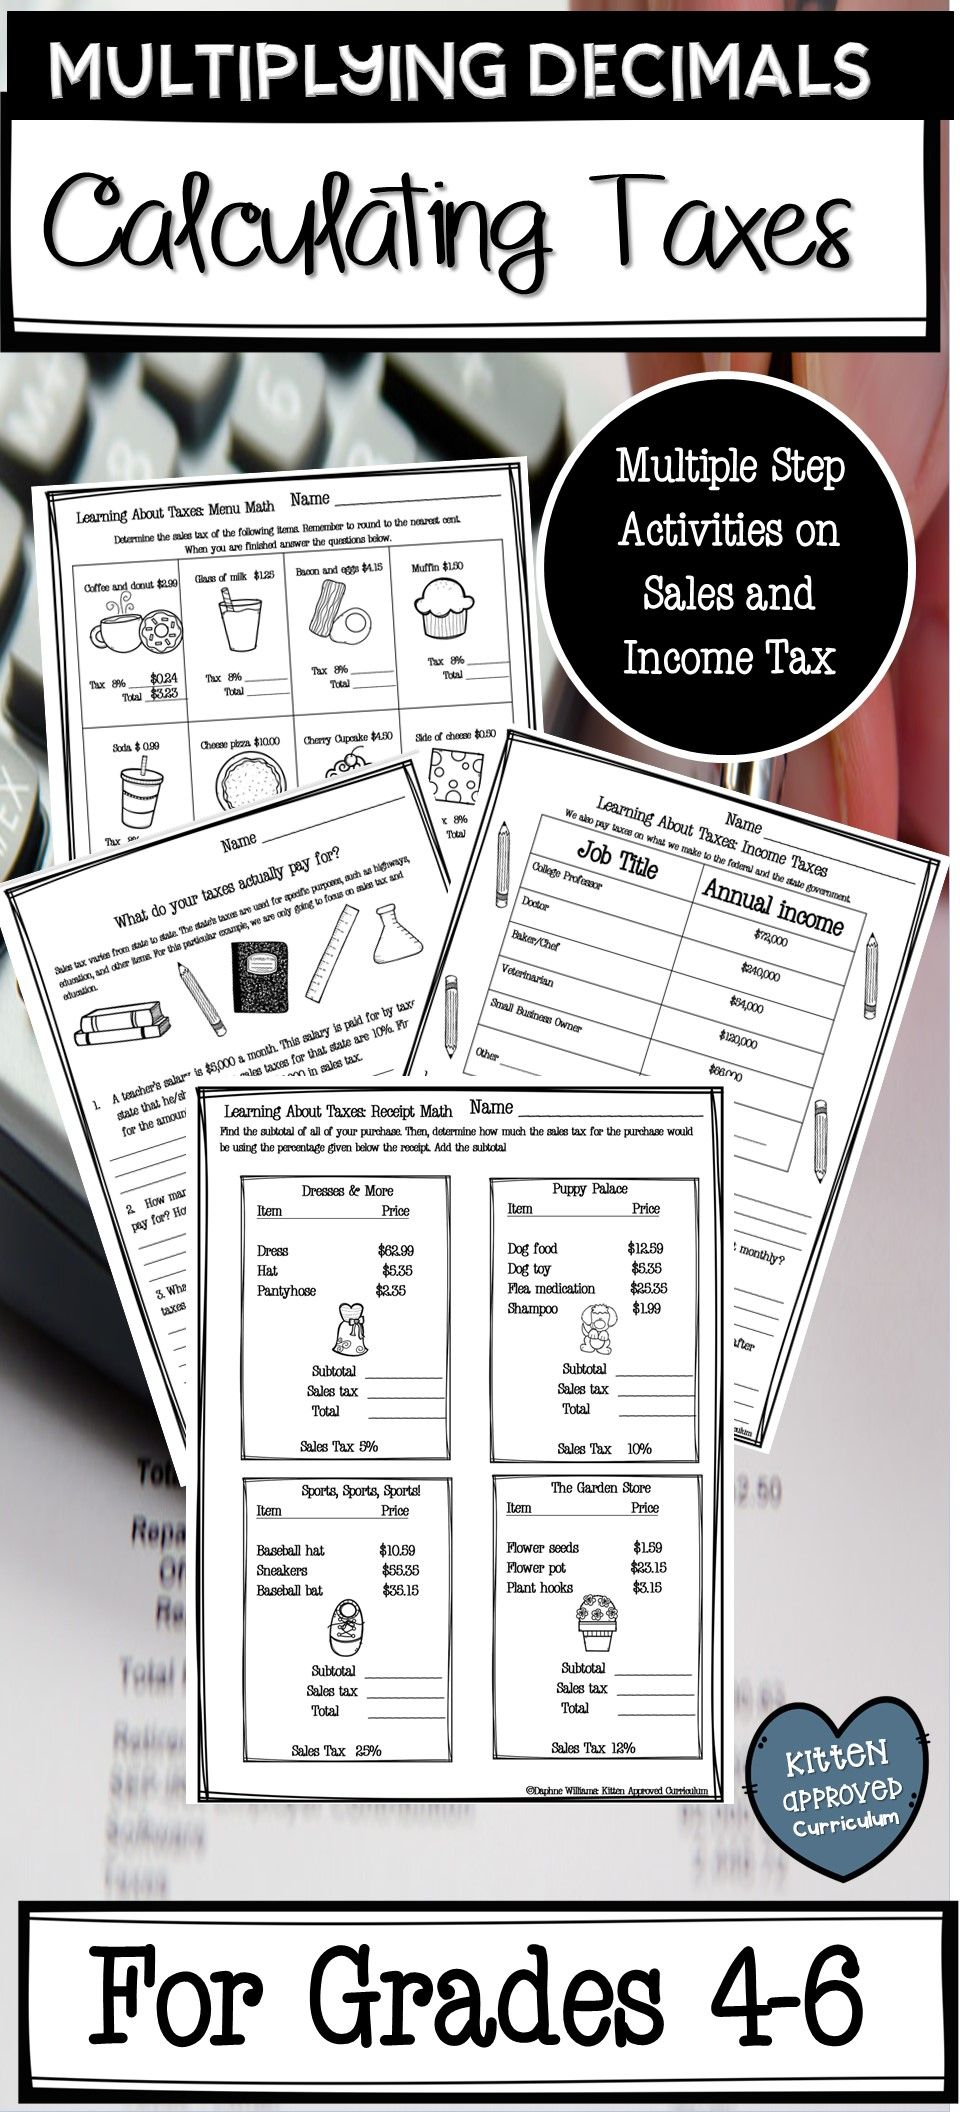 At Home Math Resources Adding and Subtracting Decimals